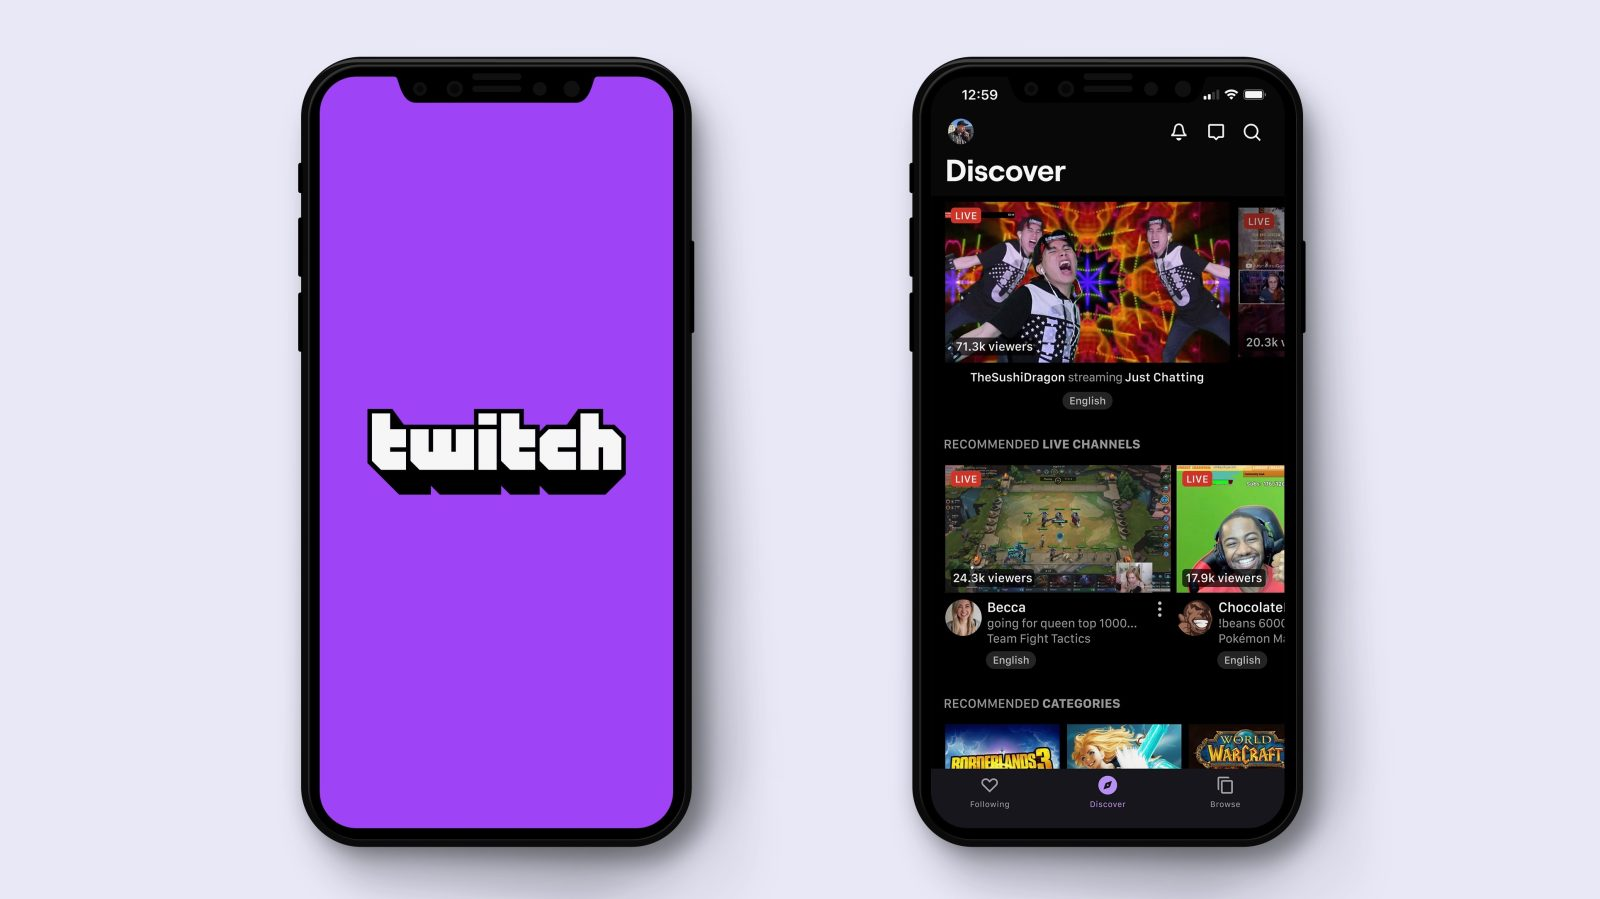 Twitch for iOS adds support for subscribing to streamers, but with an added cost